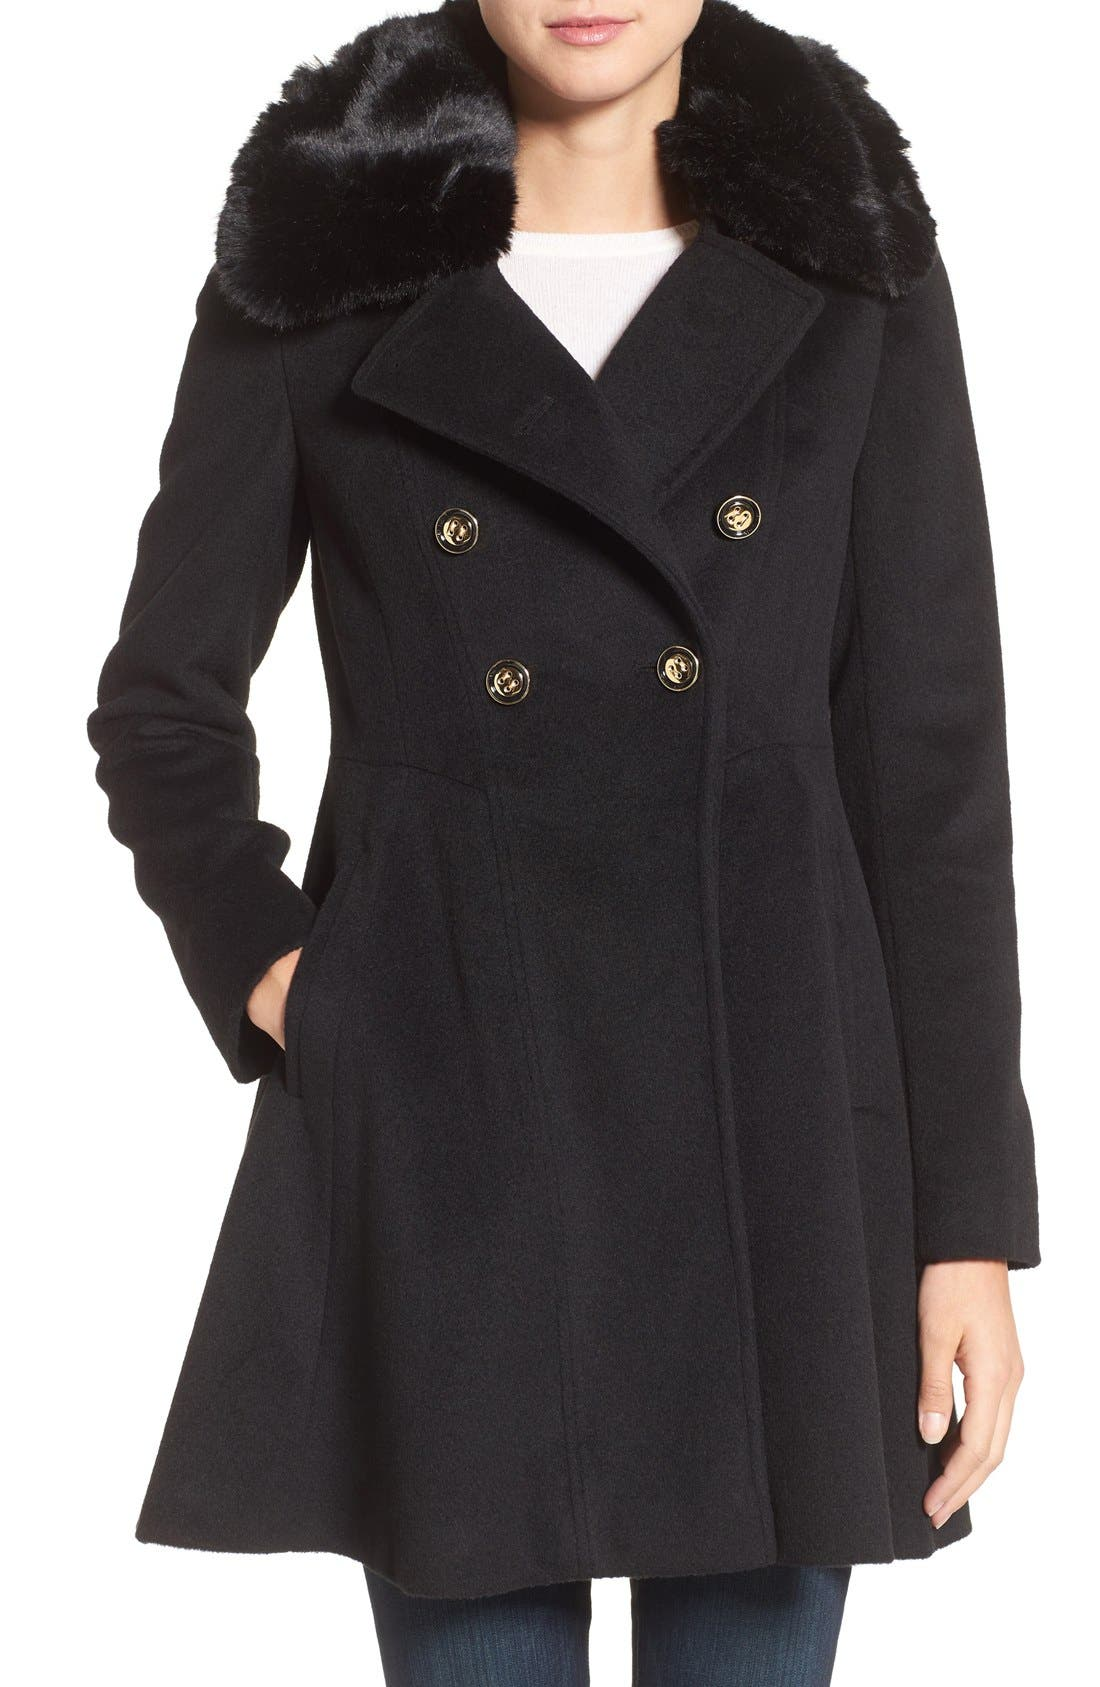 Main Image - Via Spiga Double Breasted Coat with Faux Fur Collar